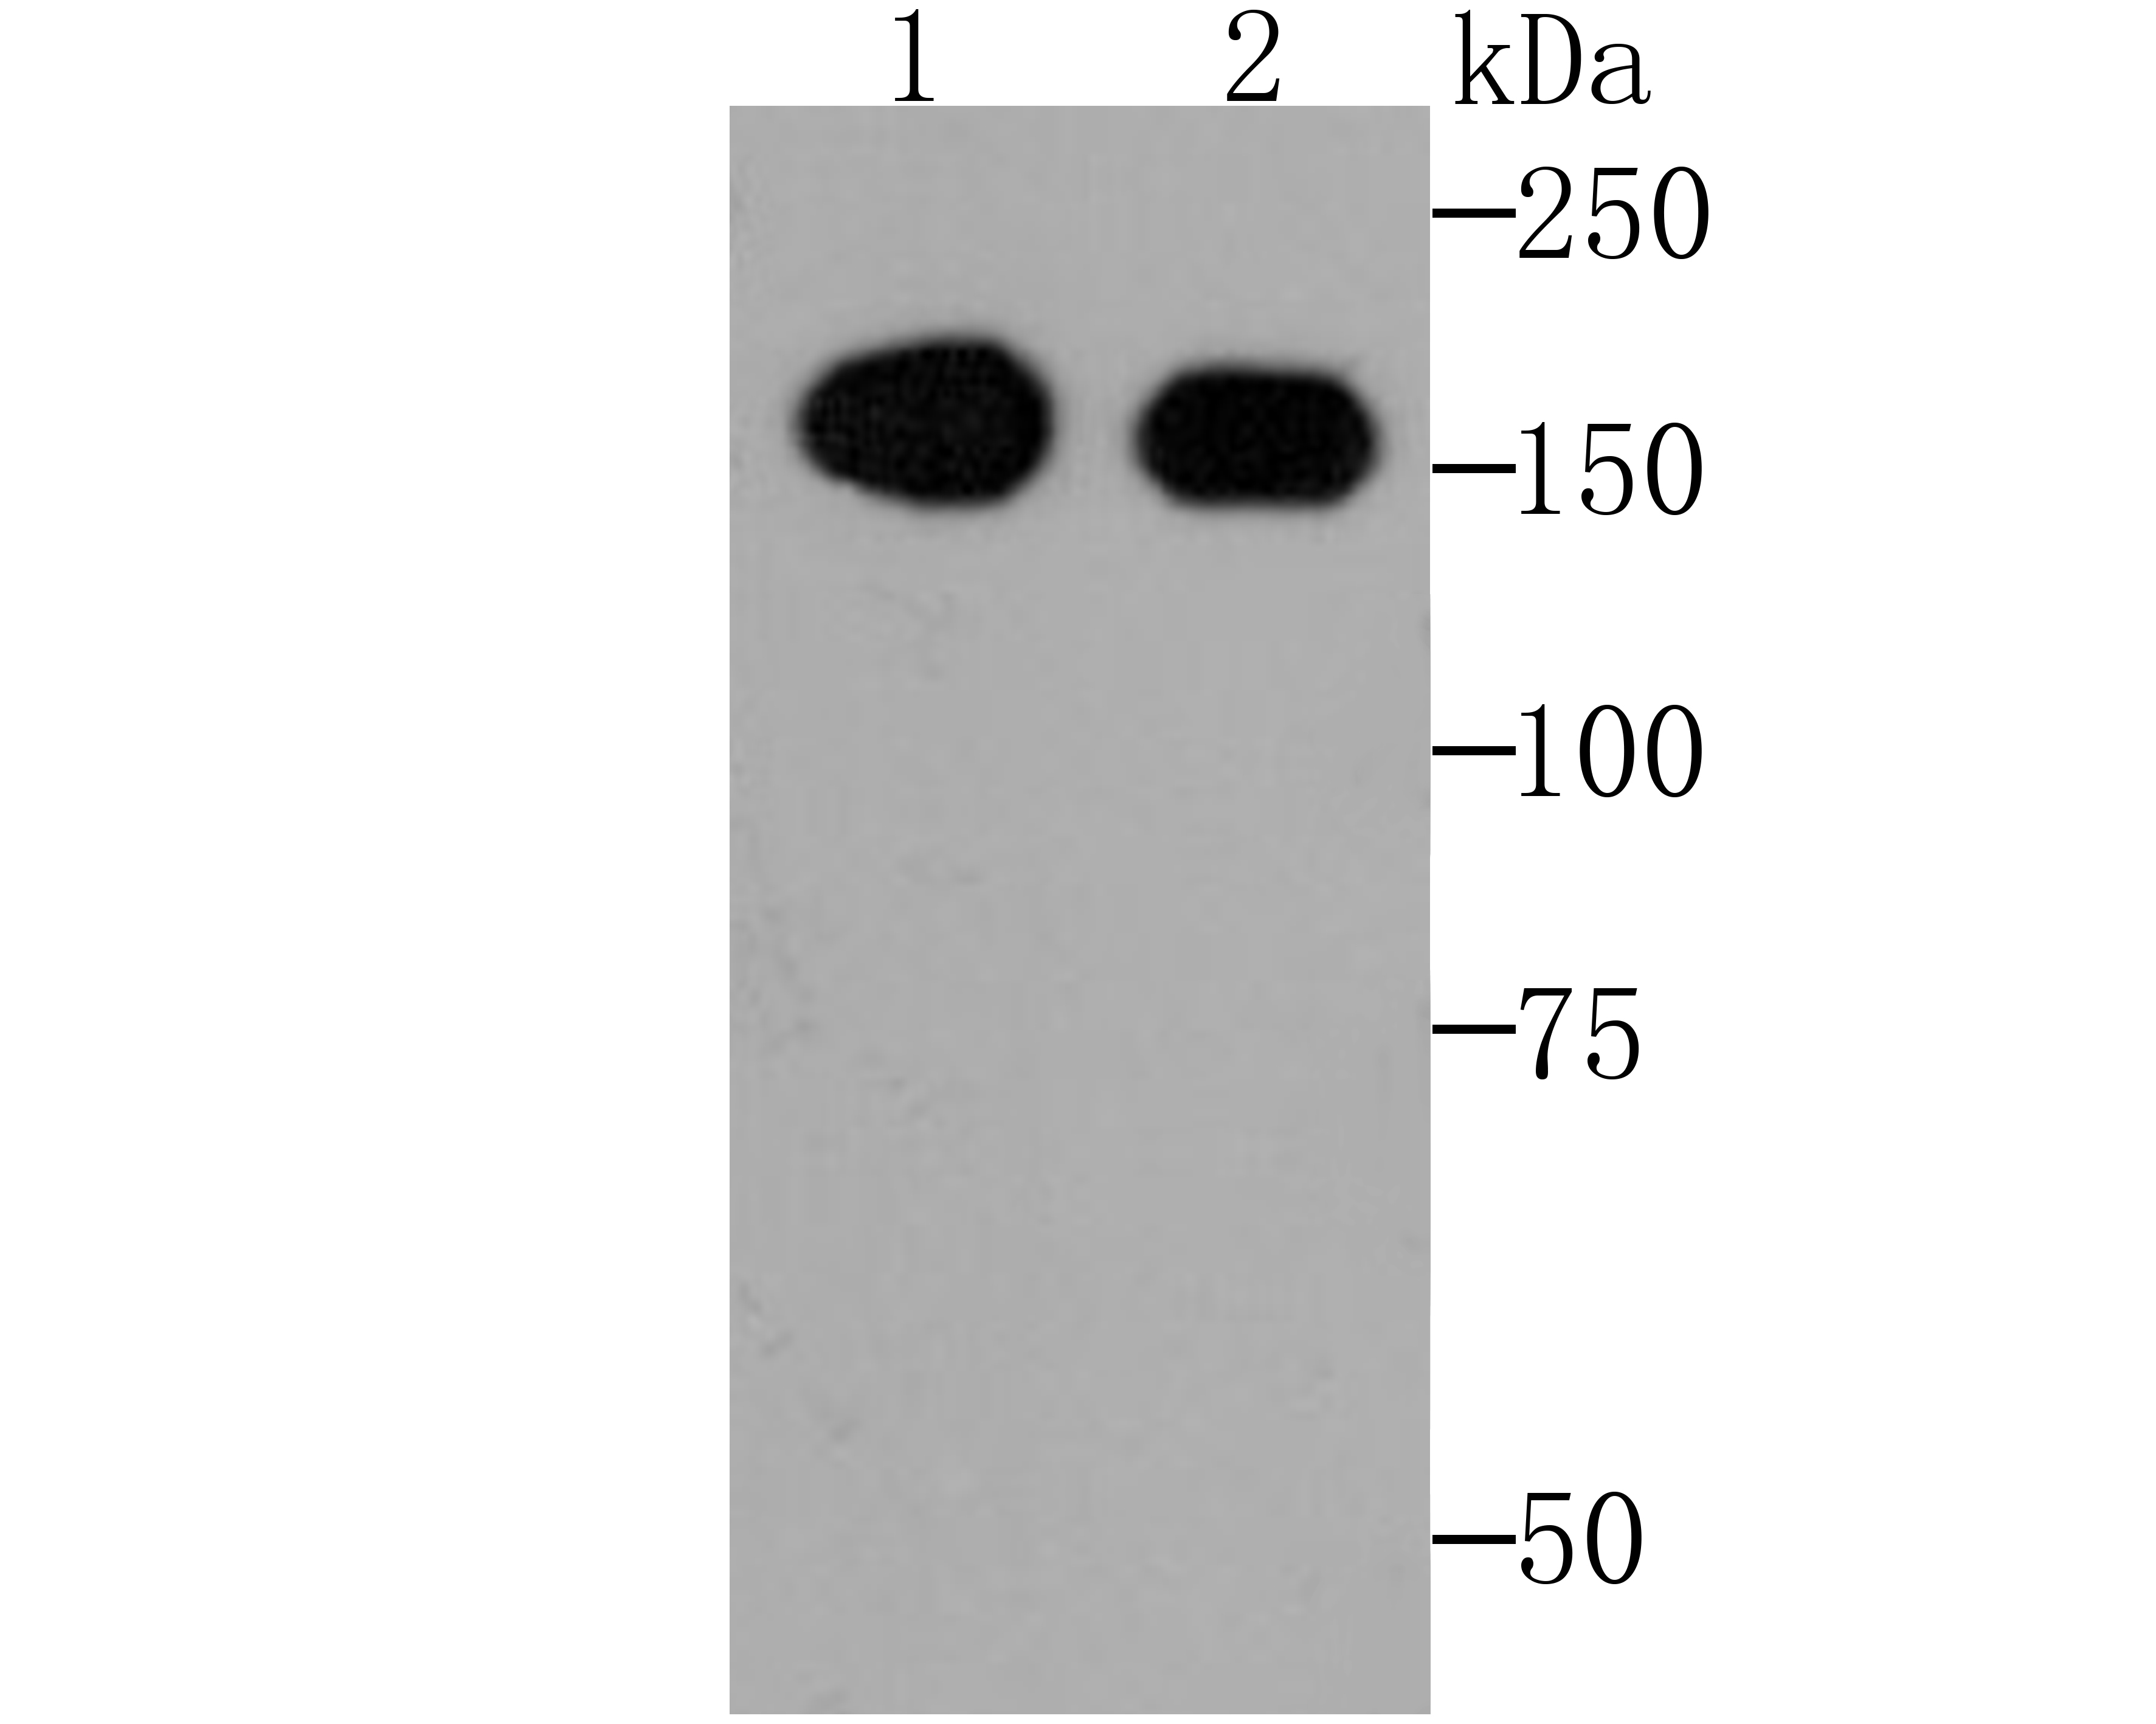 Western blot analysis of EGFR on HepG2 (1) and Hela (2) cell lysates using anti-EGFR antibody at 1/1,000 dilution.